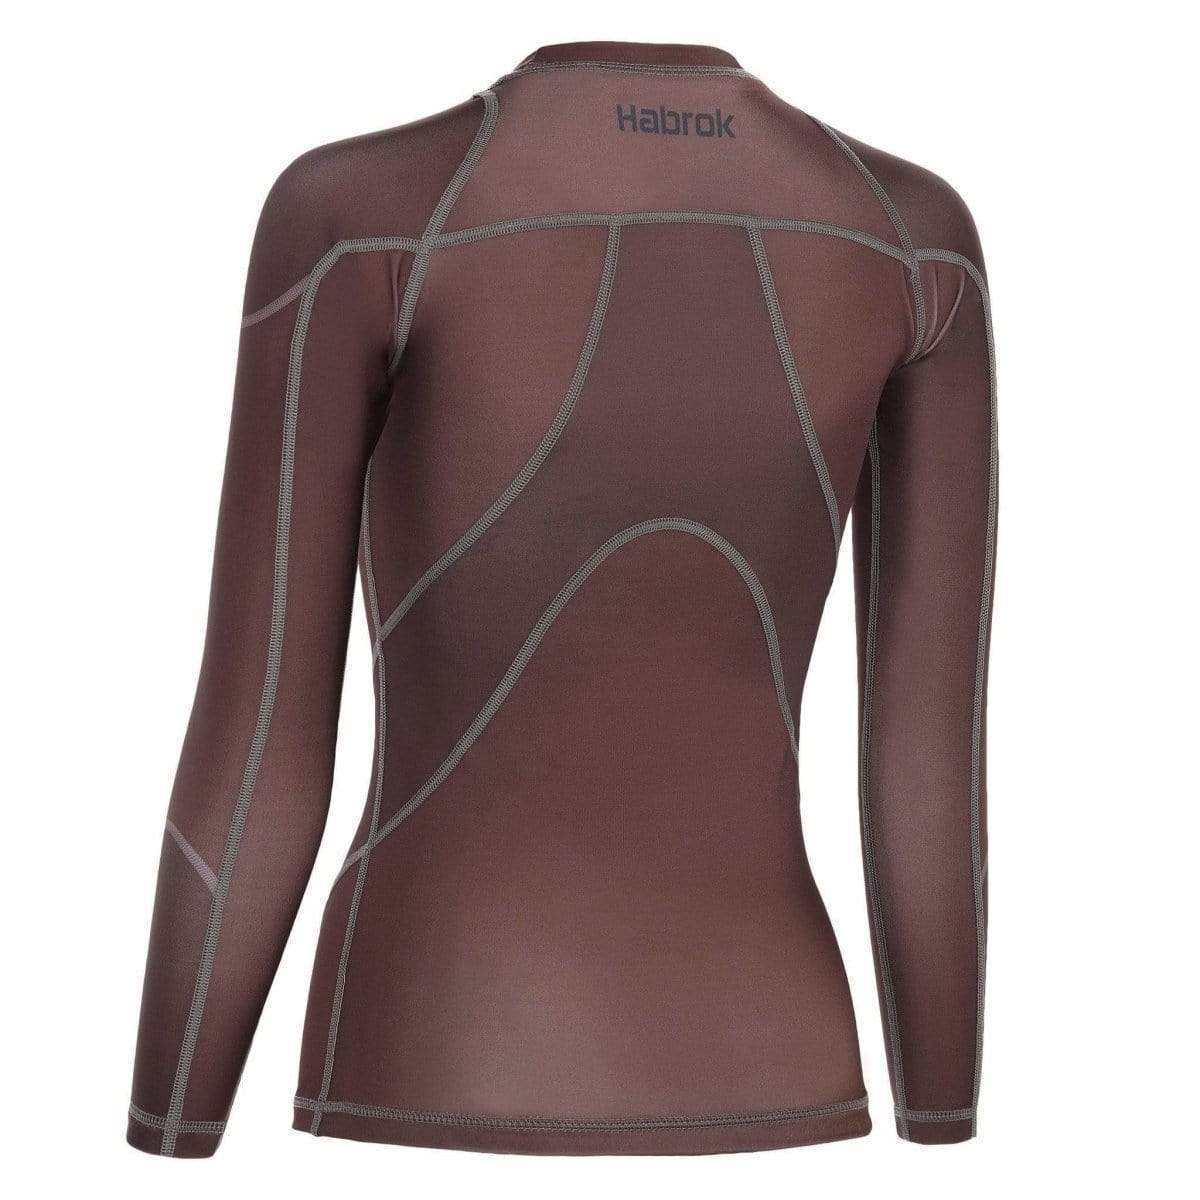 Habrok Rash Guard Pugnator | Rash Guard | Full Sleeve | Brown | Women